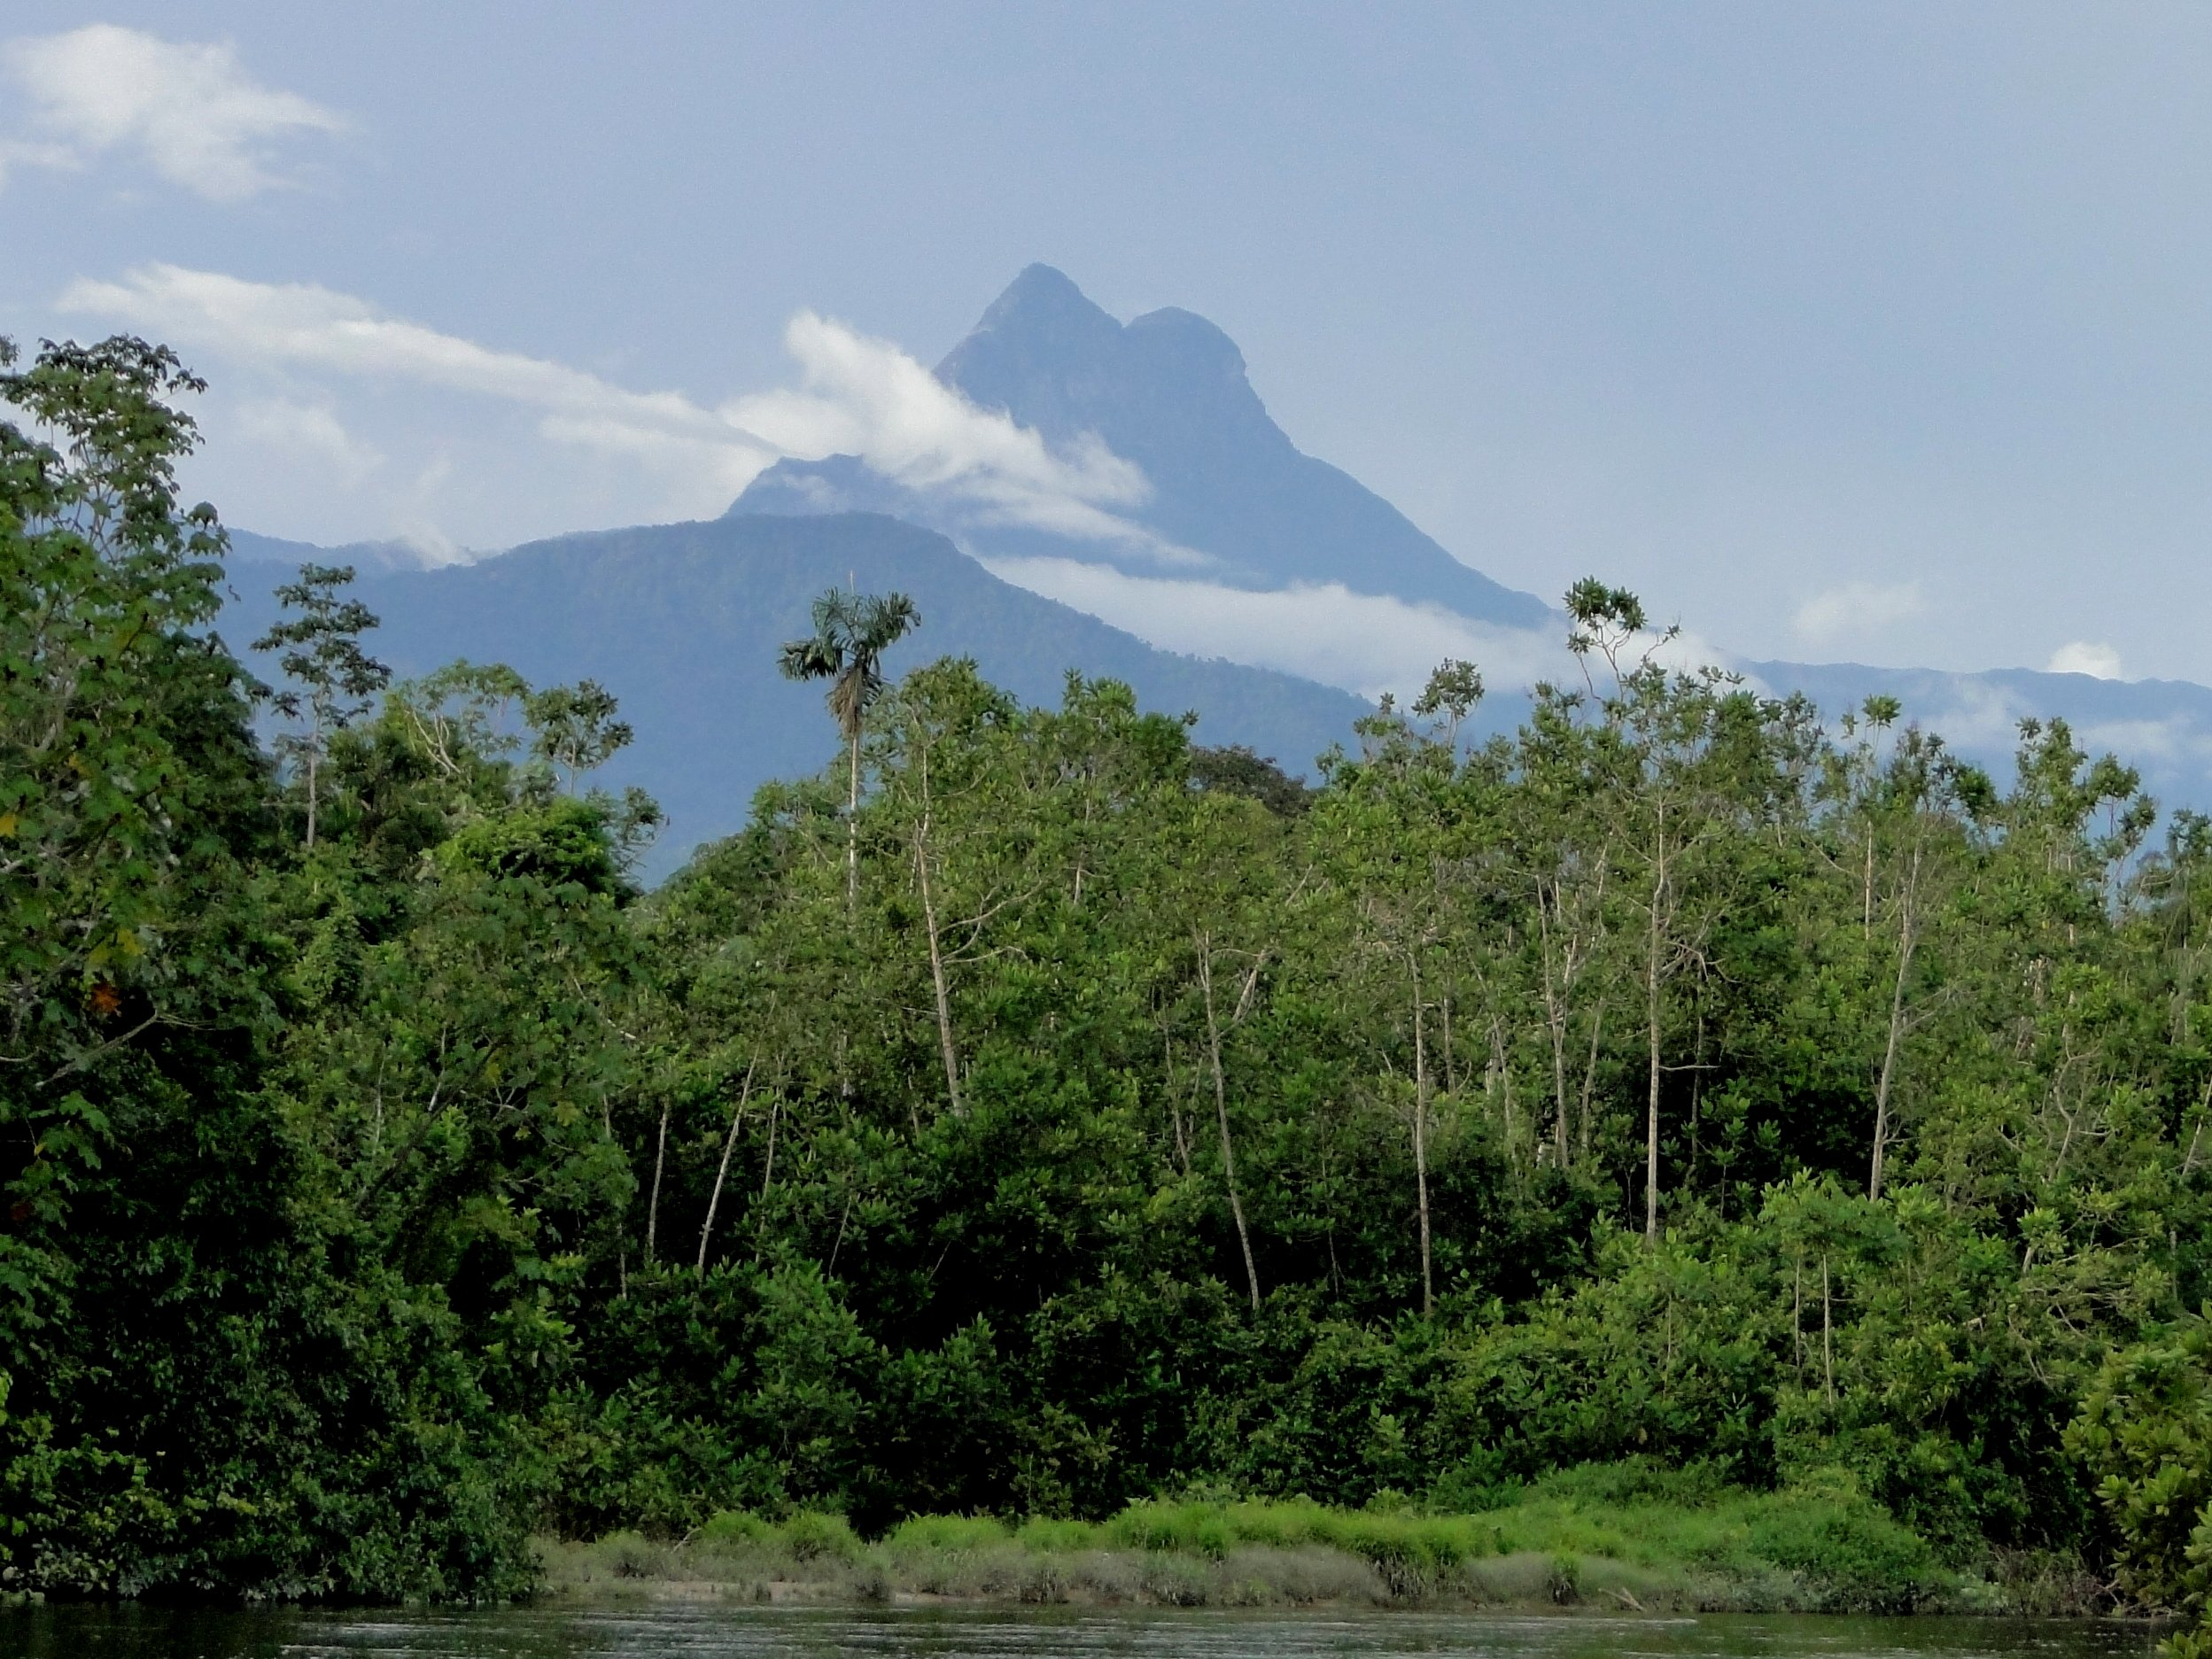 Due to the very high altitude, the vegetation is different and that is why there is a lot of research on this vegetation. Pico da Neblina is one of the most attractive attractions in the Amazon and is considered a Natural Heritage.